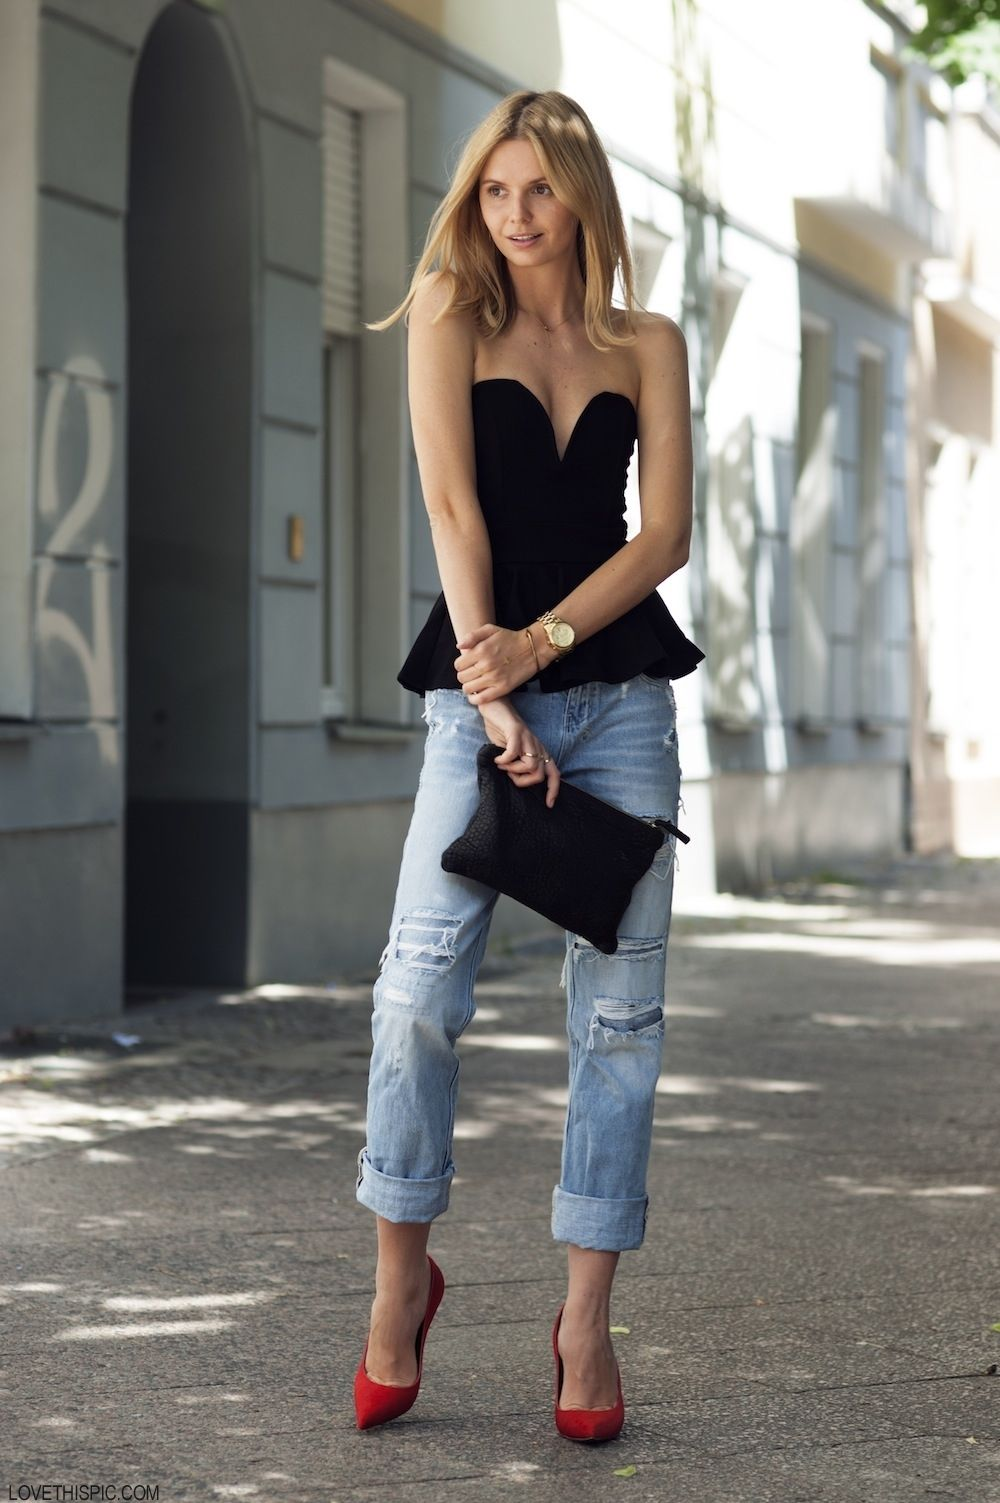 Street Style black heels jeans fashion photography